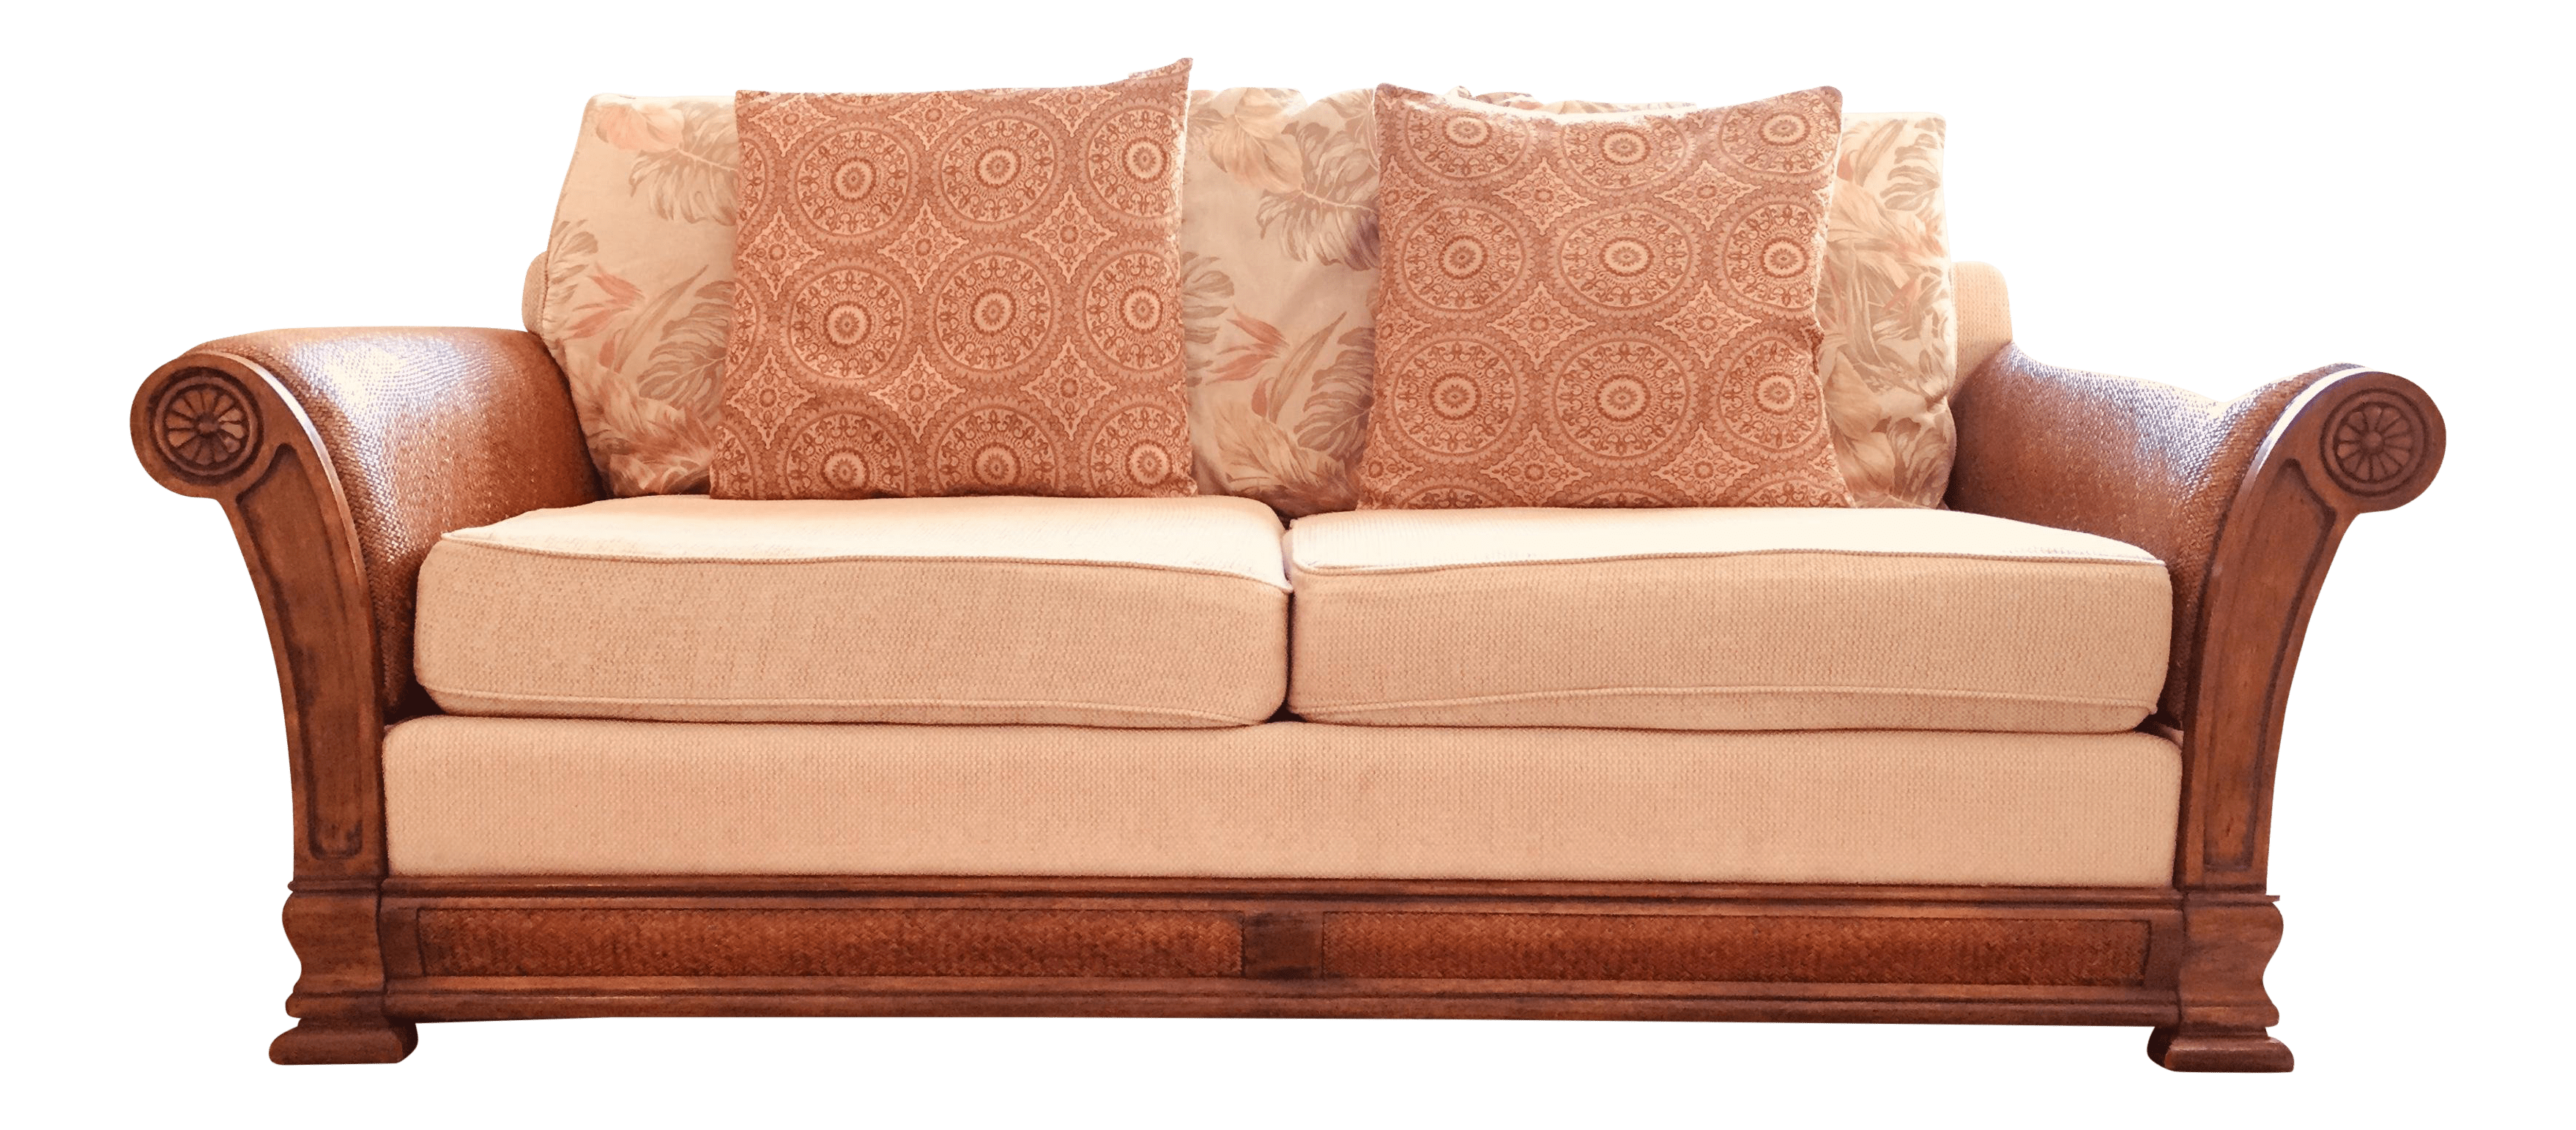 regency sofa john lewis jacksonville futon sleeper bed vintage used standard sofas for sale chairish tommy bahama style solid wood upholstered honey beige